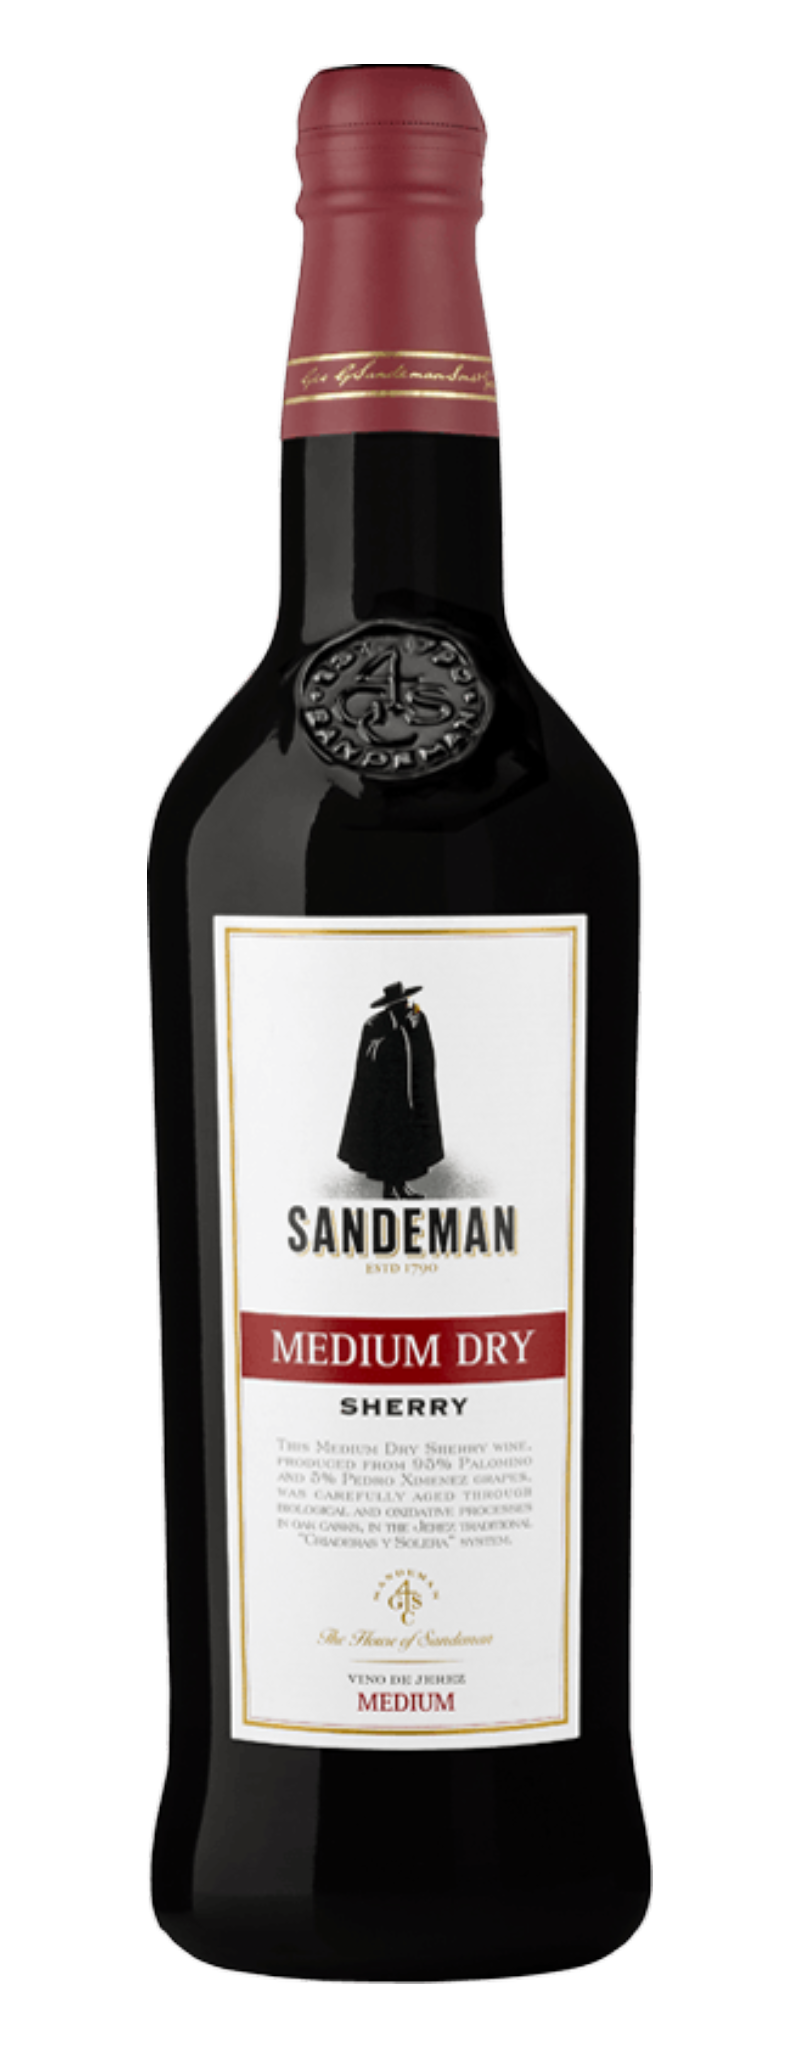 Sandeman Sherry Character Medium Dry Sherry  - 750ml